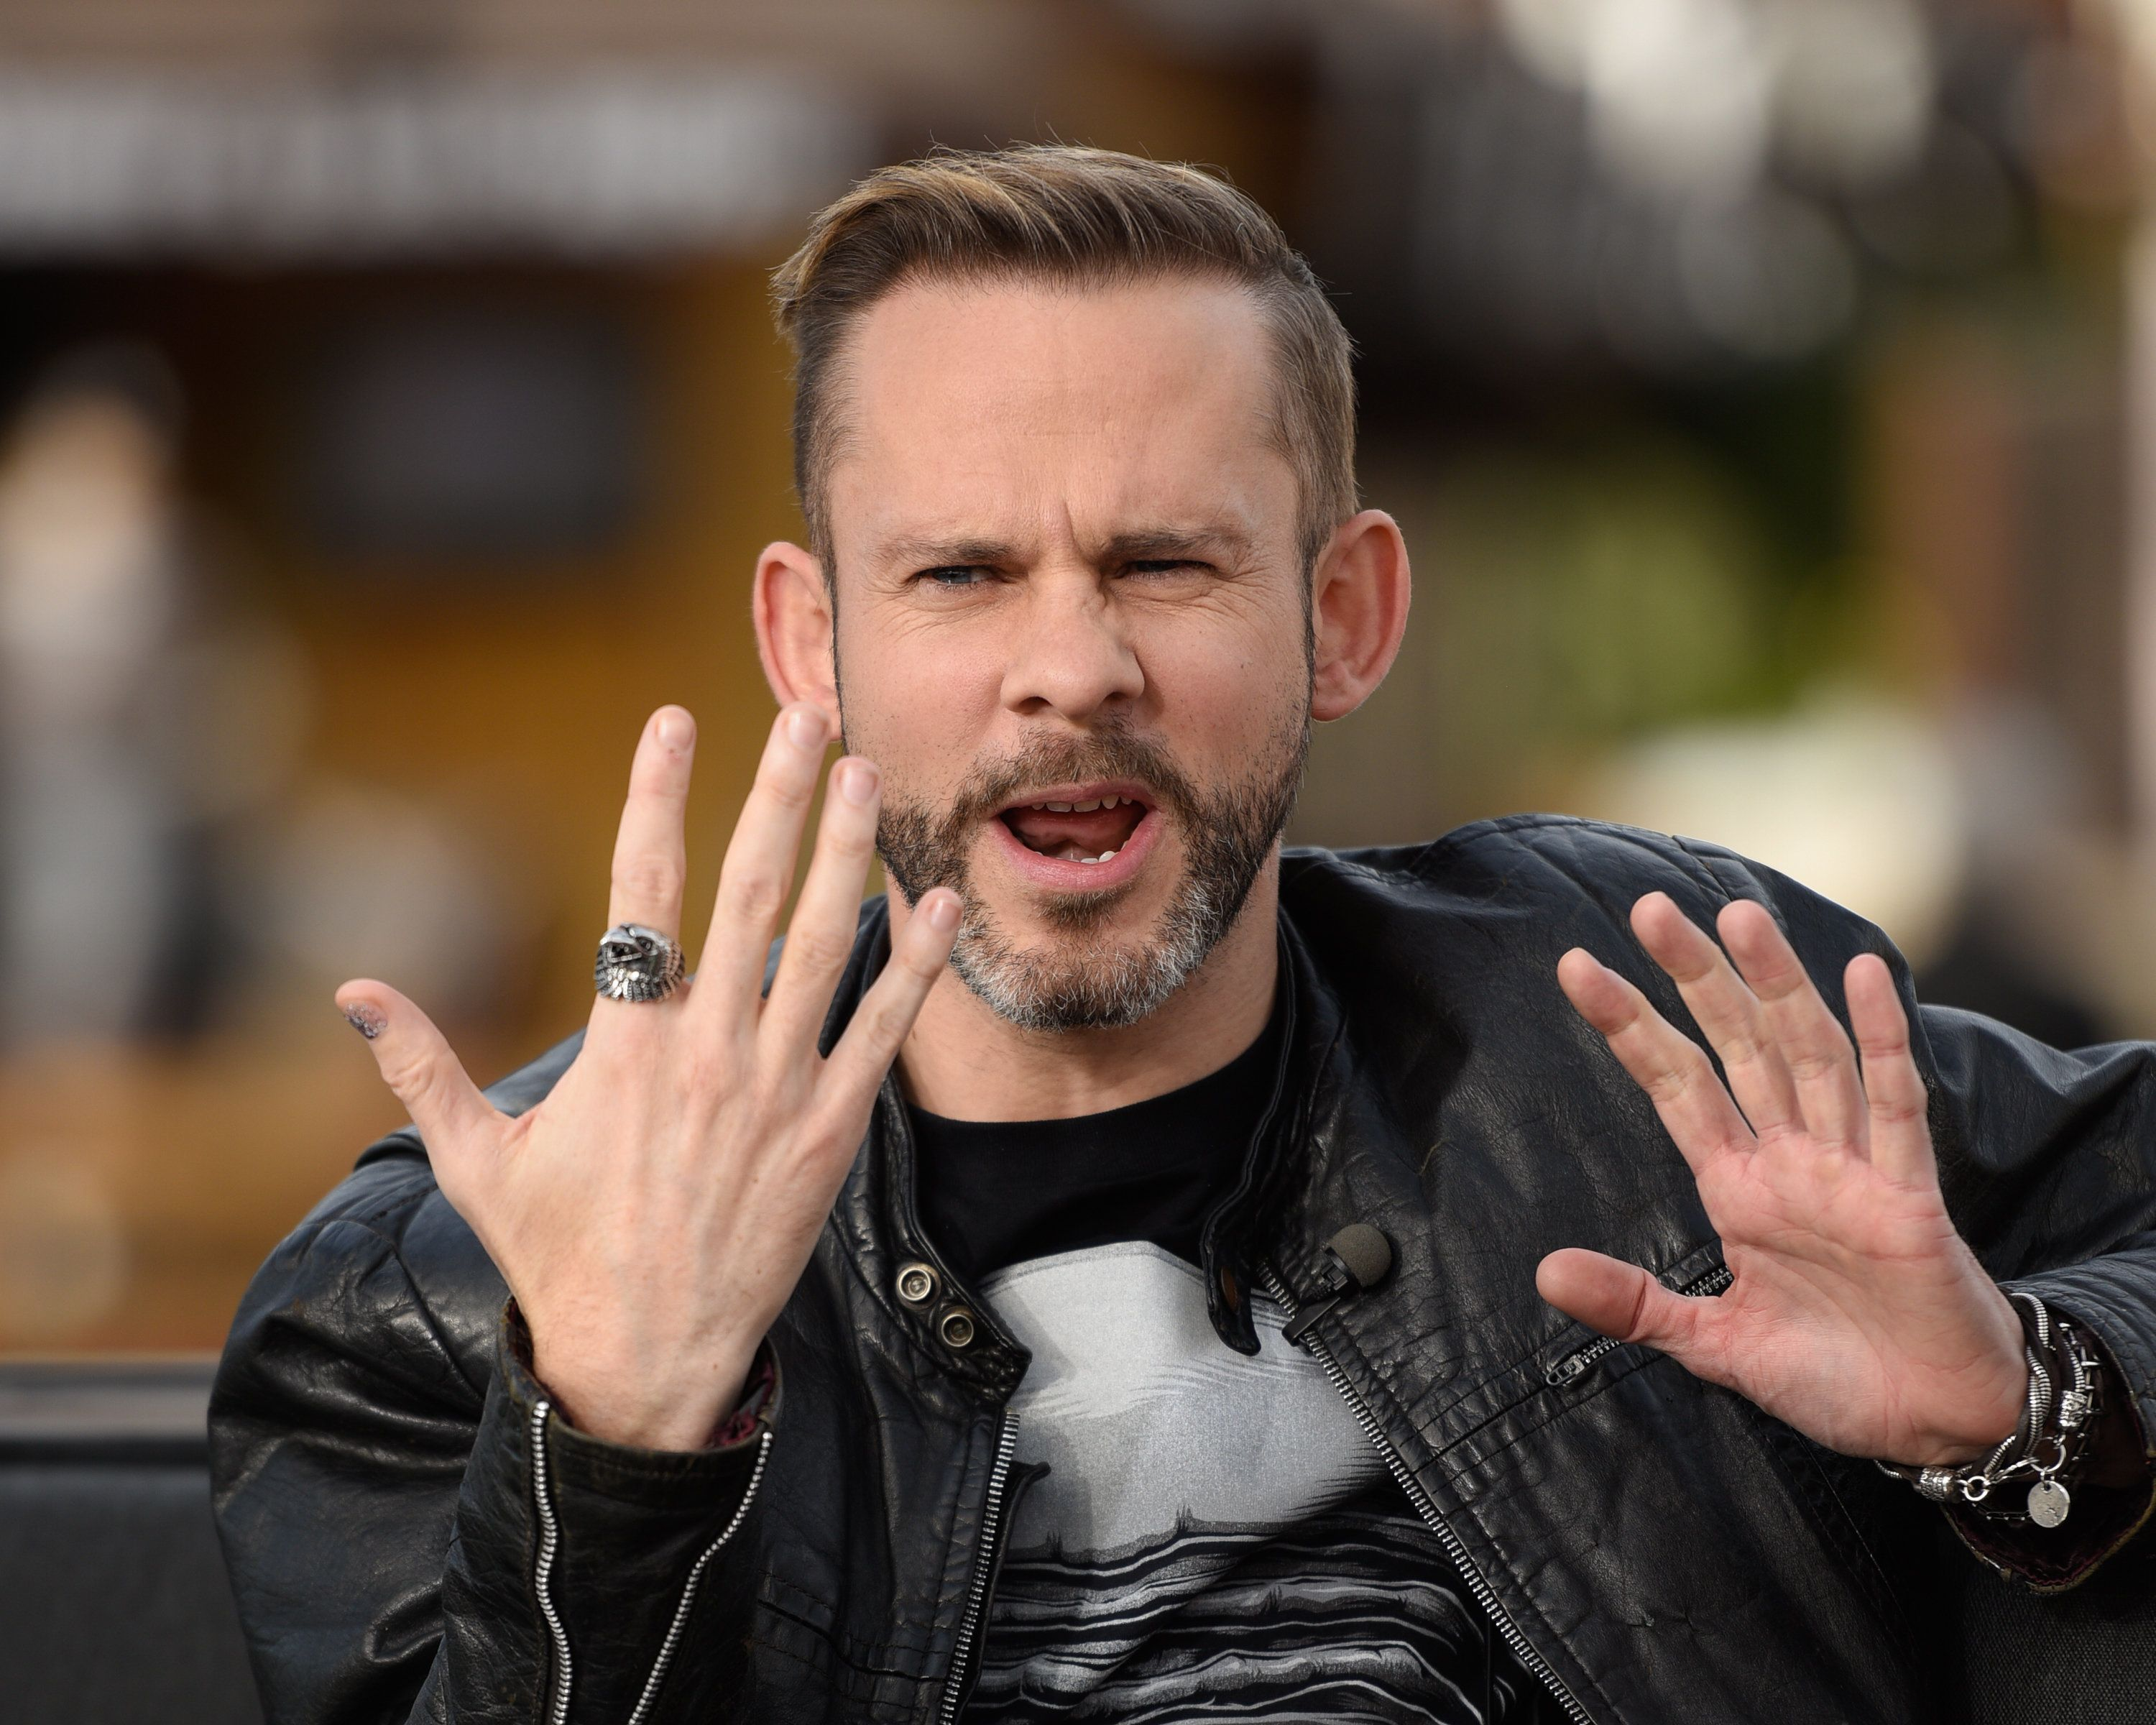 UNIVERSAL CITY, CA - JANUARY 22:  Dominic Monaghan visits 'Extra' at Universal Studios Hollywood on January 22, 2016 in Universal City, California.  (Photo by Noel Vasquez/Getty Images)